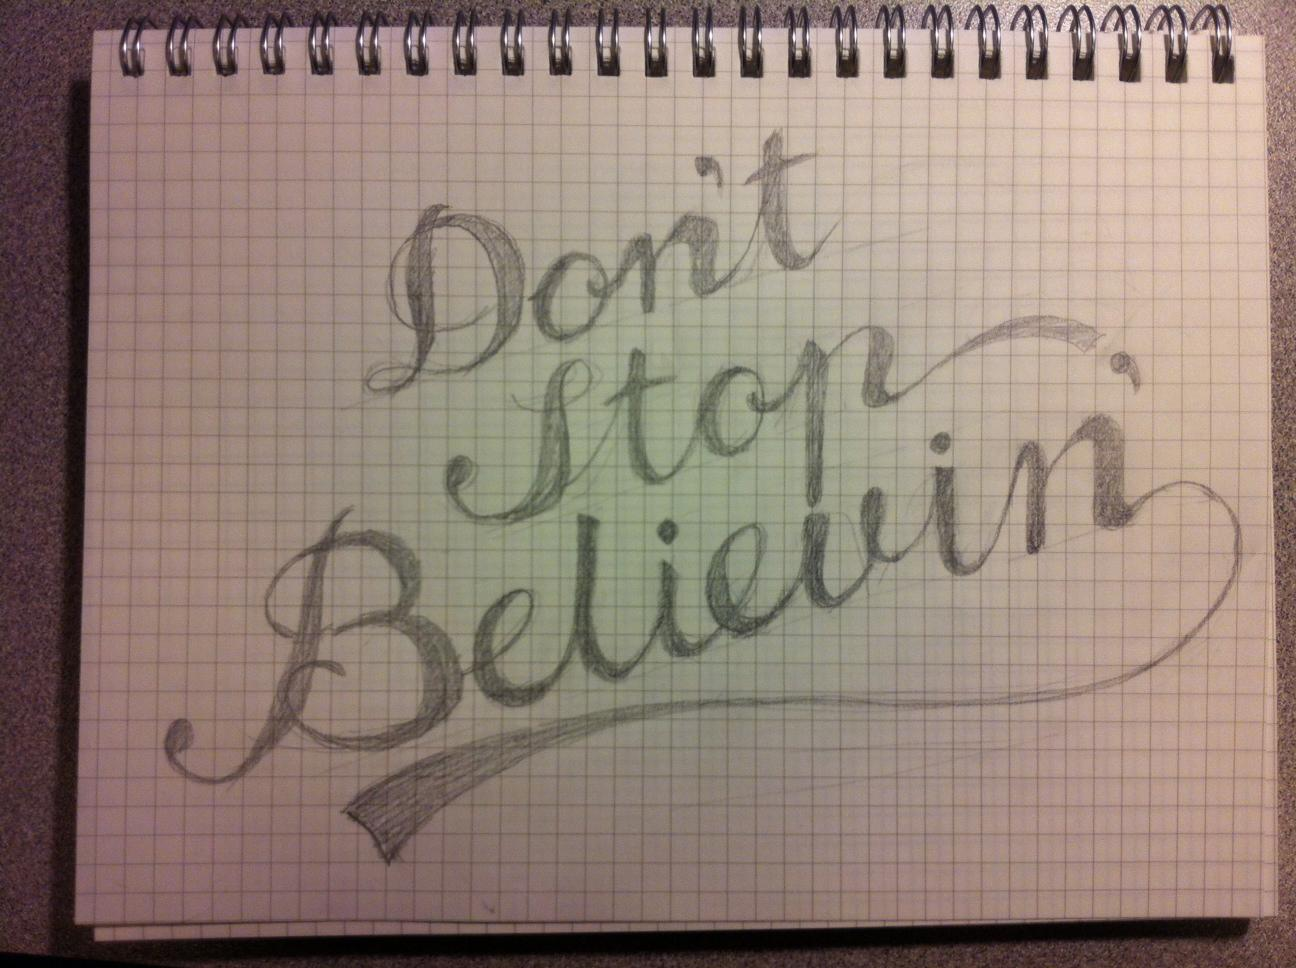 Don't Stop Believin' - image 1 - student project